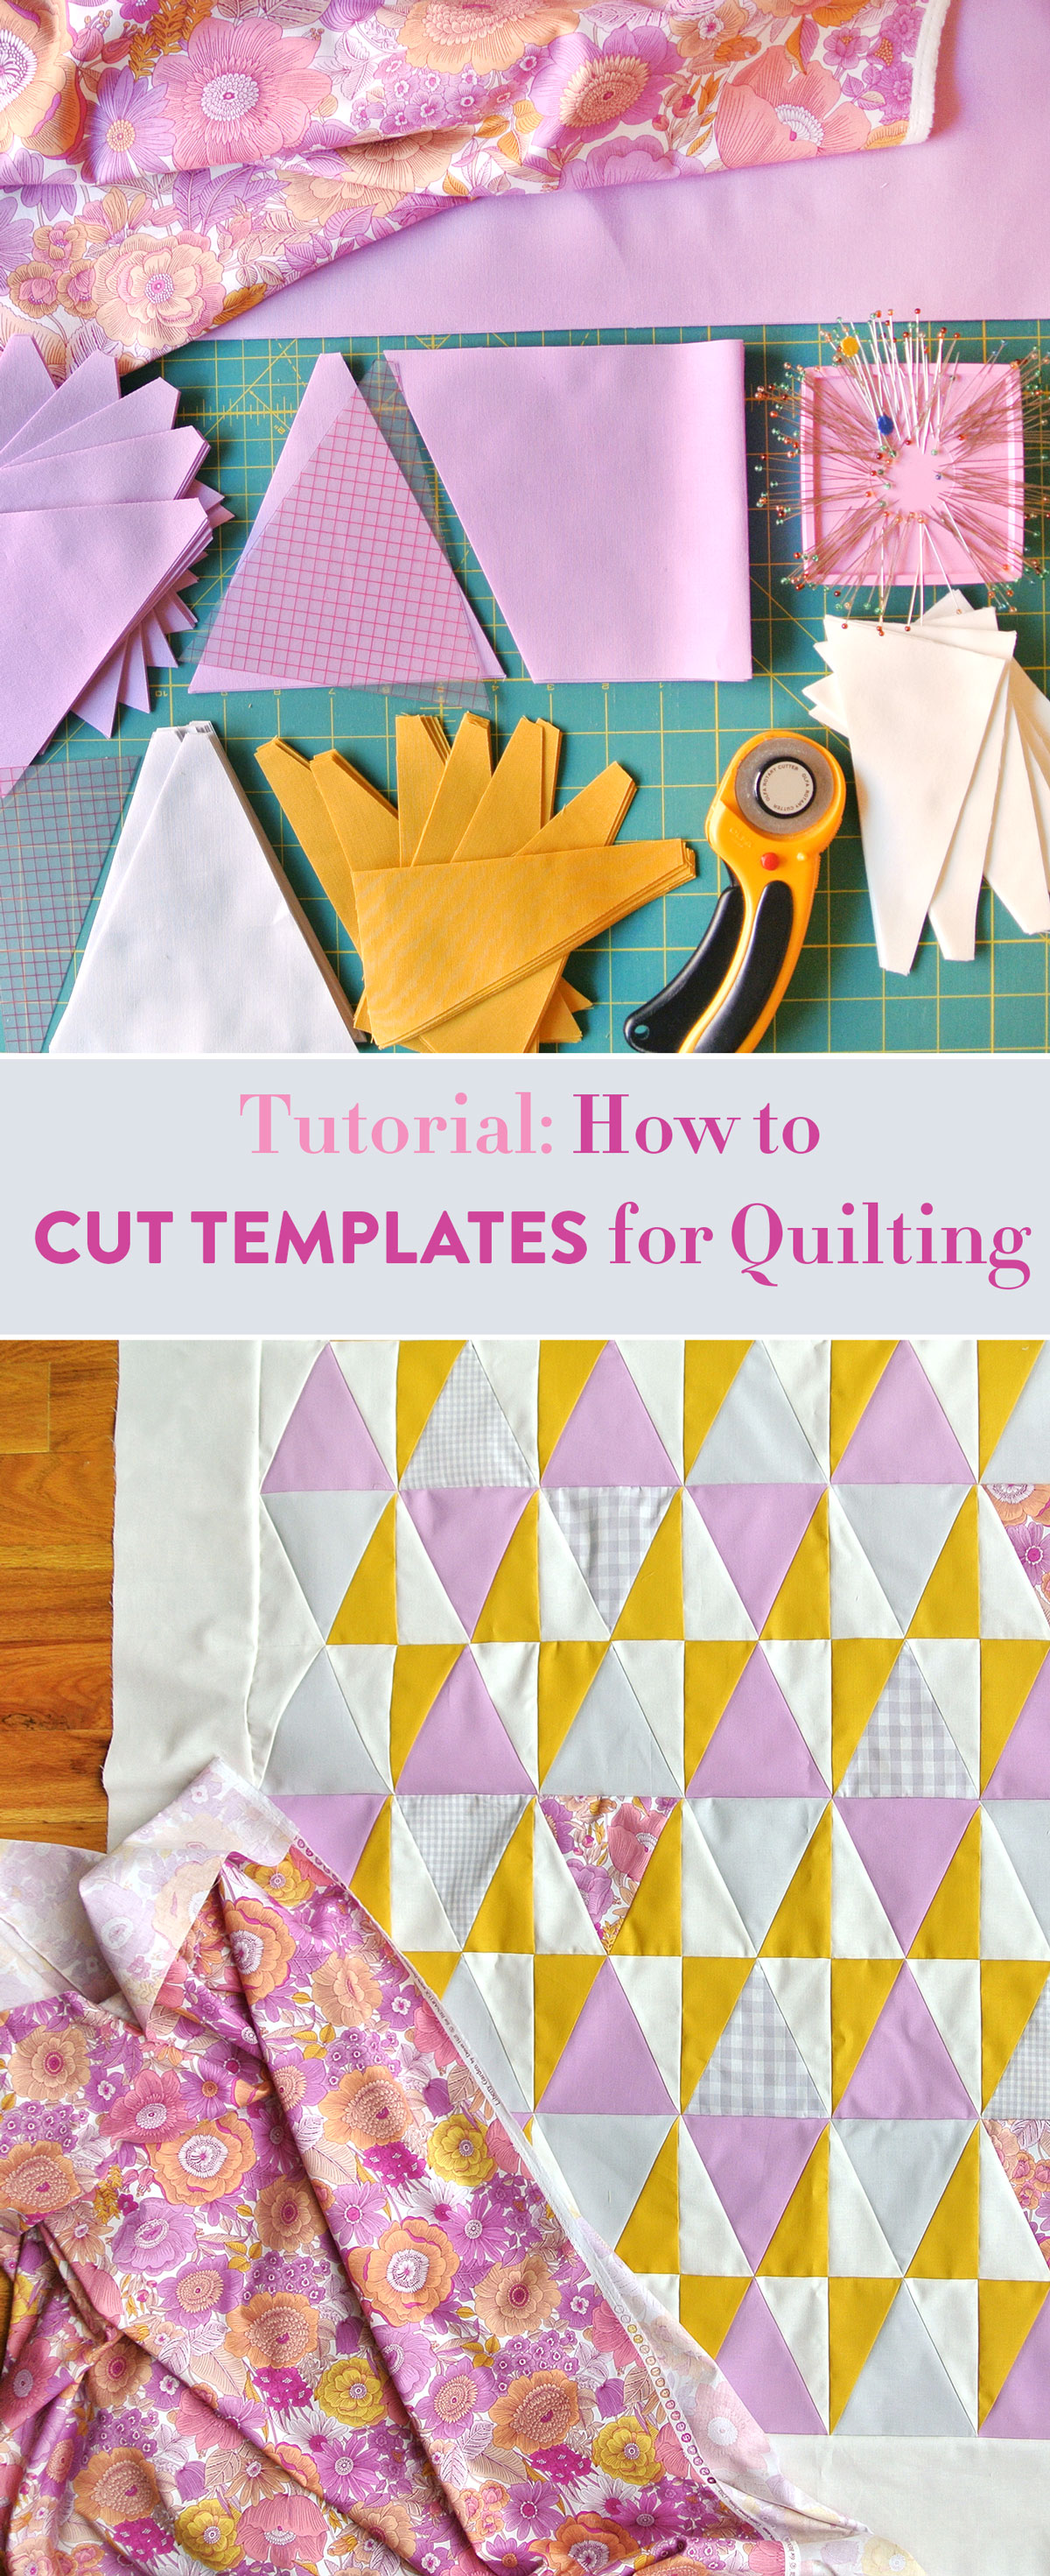 cut-templates-for-quilting